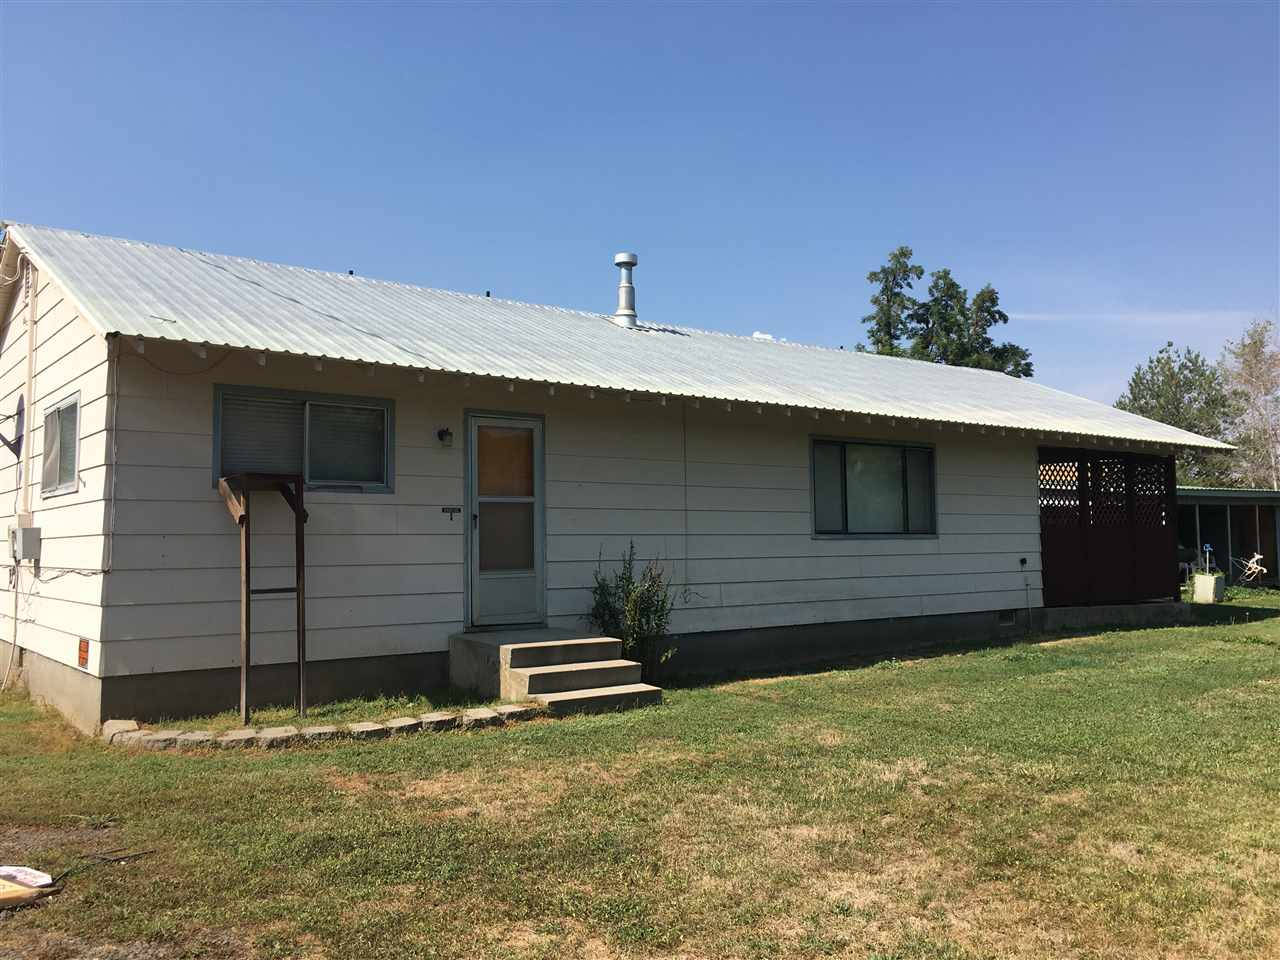 Single Family Home for Sale at 120 N Weiser Street 120 N Weiser Street Midvale, Idaho 83645